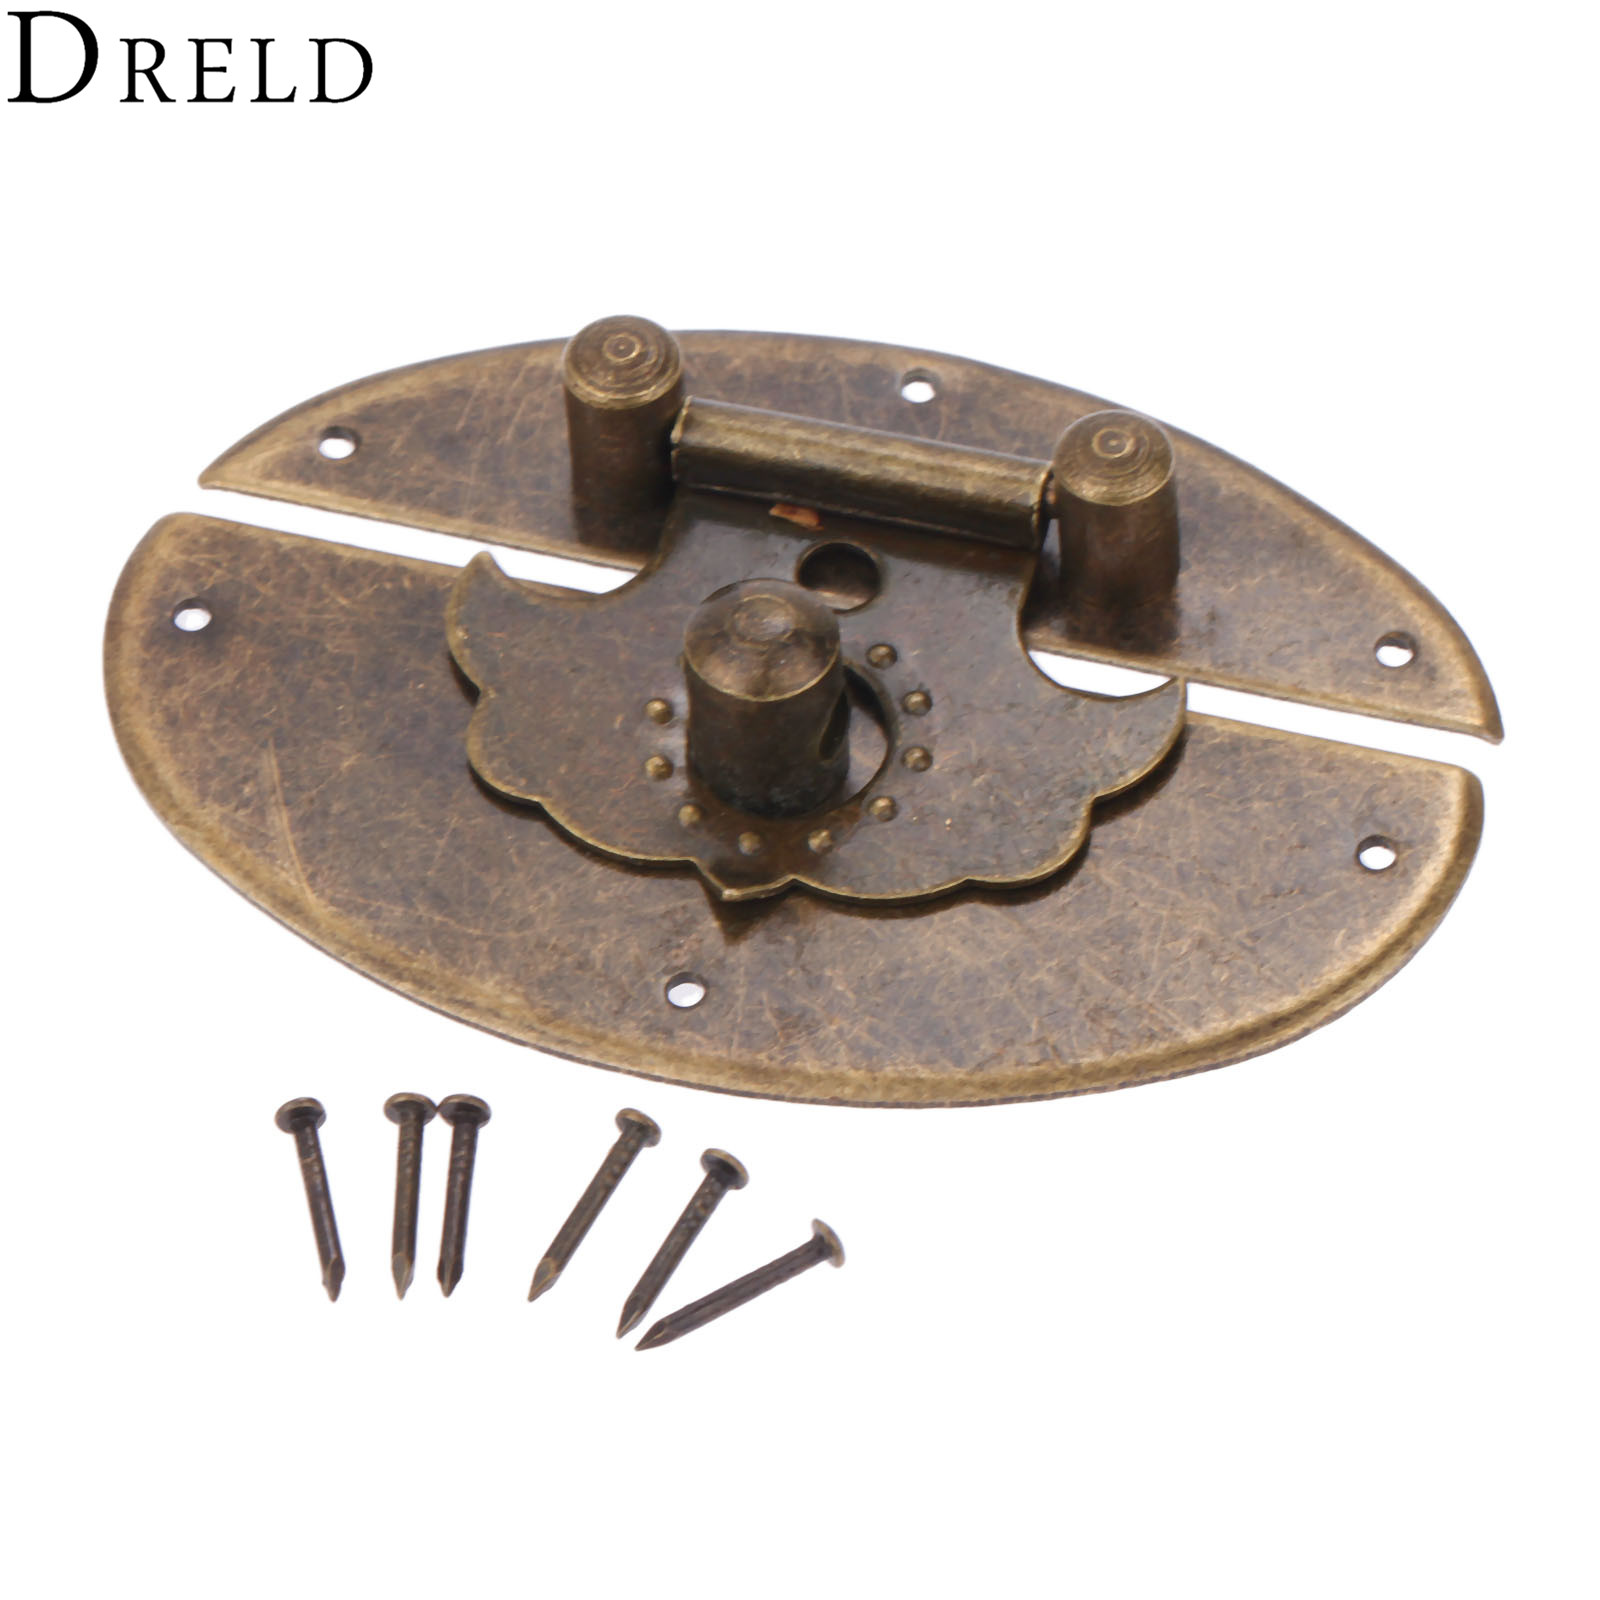 DRELD Antique Bronze Box Latch Hasps Lock Catch Latch For Jewelry Chest Box Suitcase Buckle Clip Clasp Vintage Hardware 63*42mm